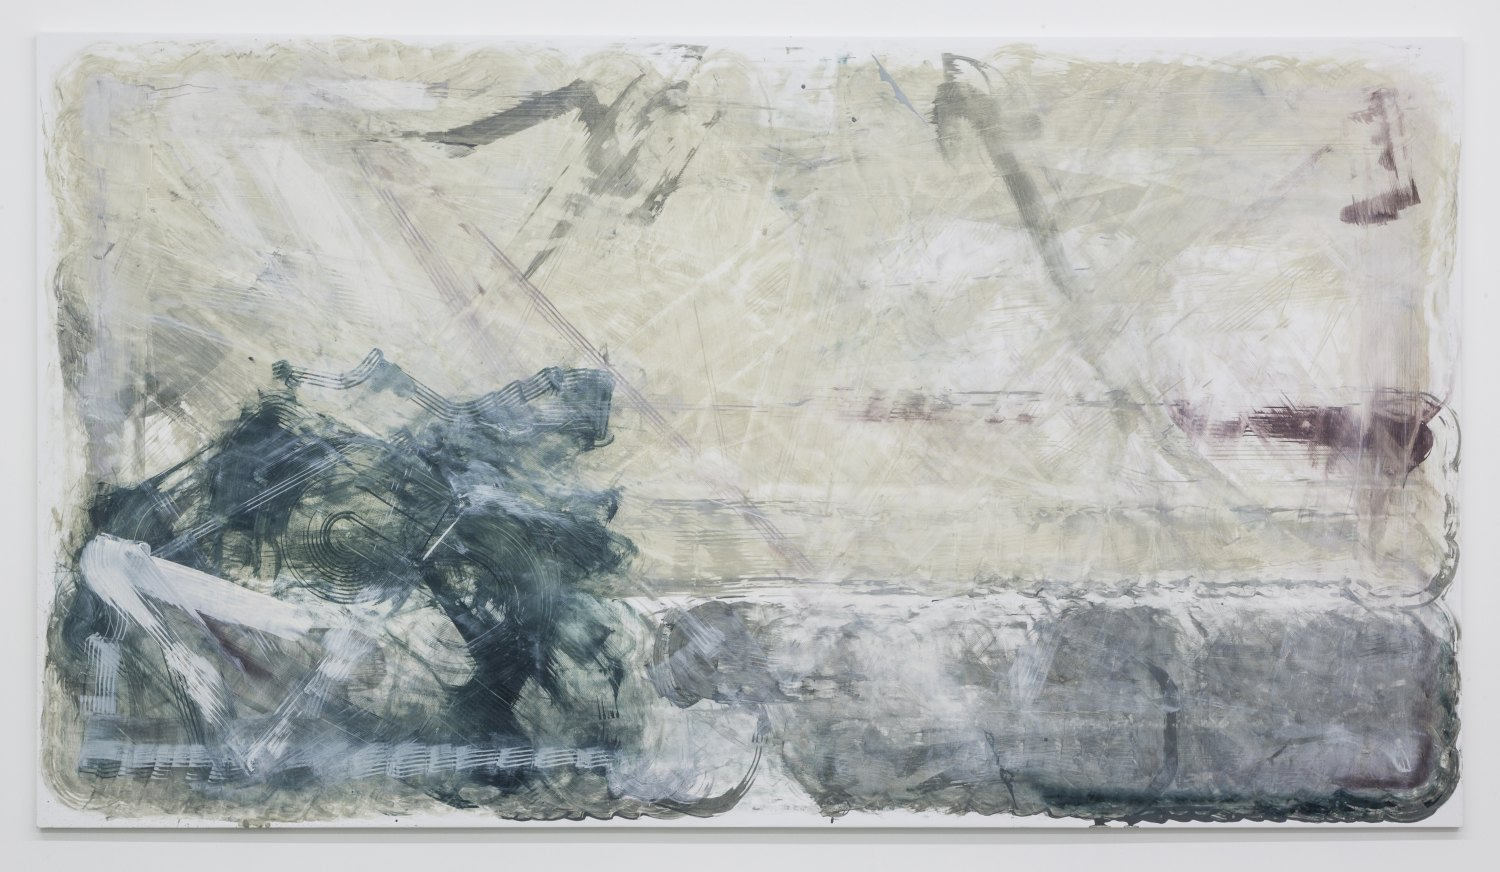 Reena Spaulings Later Seascapes 9, 2015 Farrow & Ball´s Estate Emulsions on canvas, 250 × 450 × 5 cm